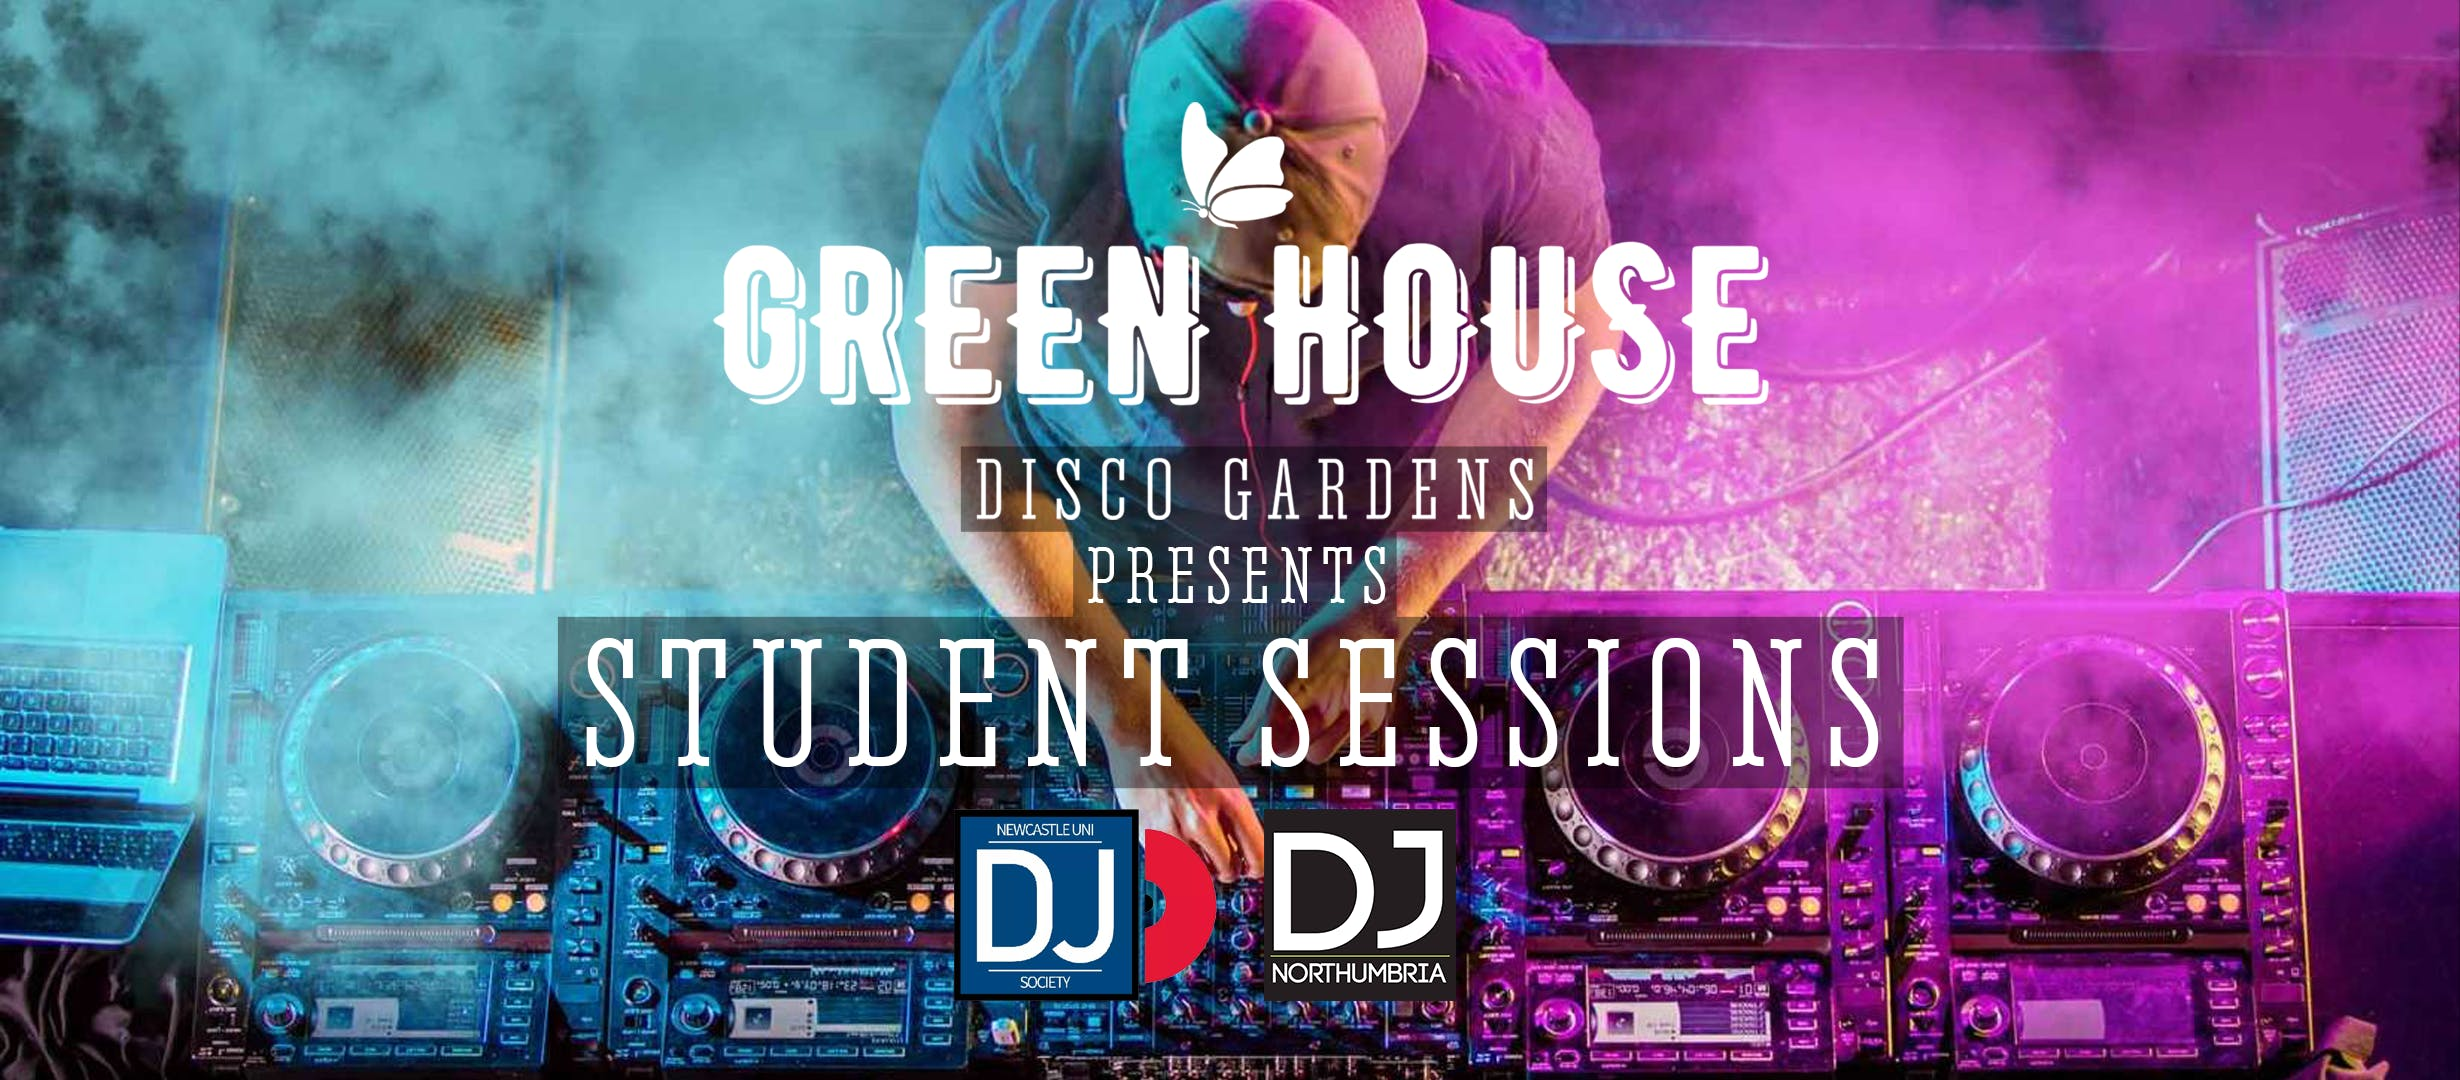 Student Sessions – Monday At Green House Disco Gardens!